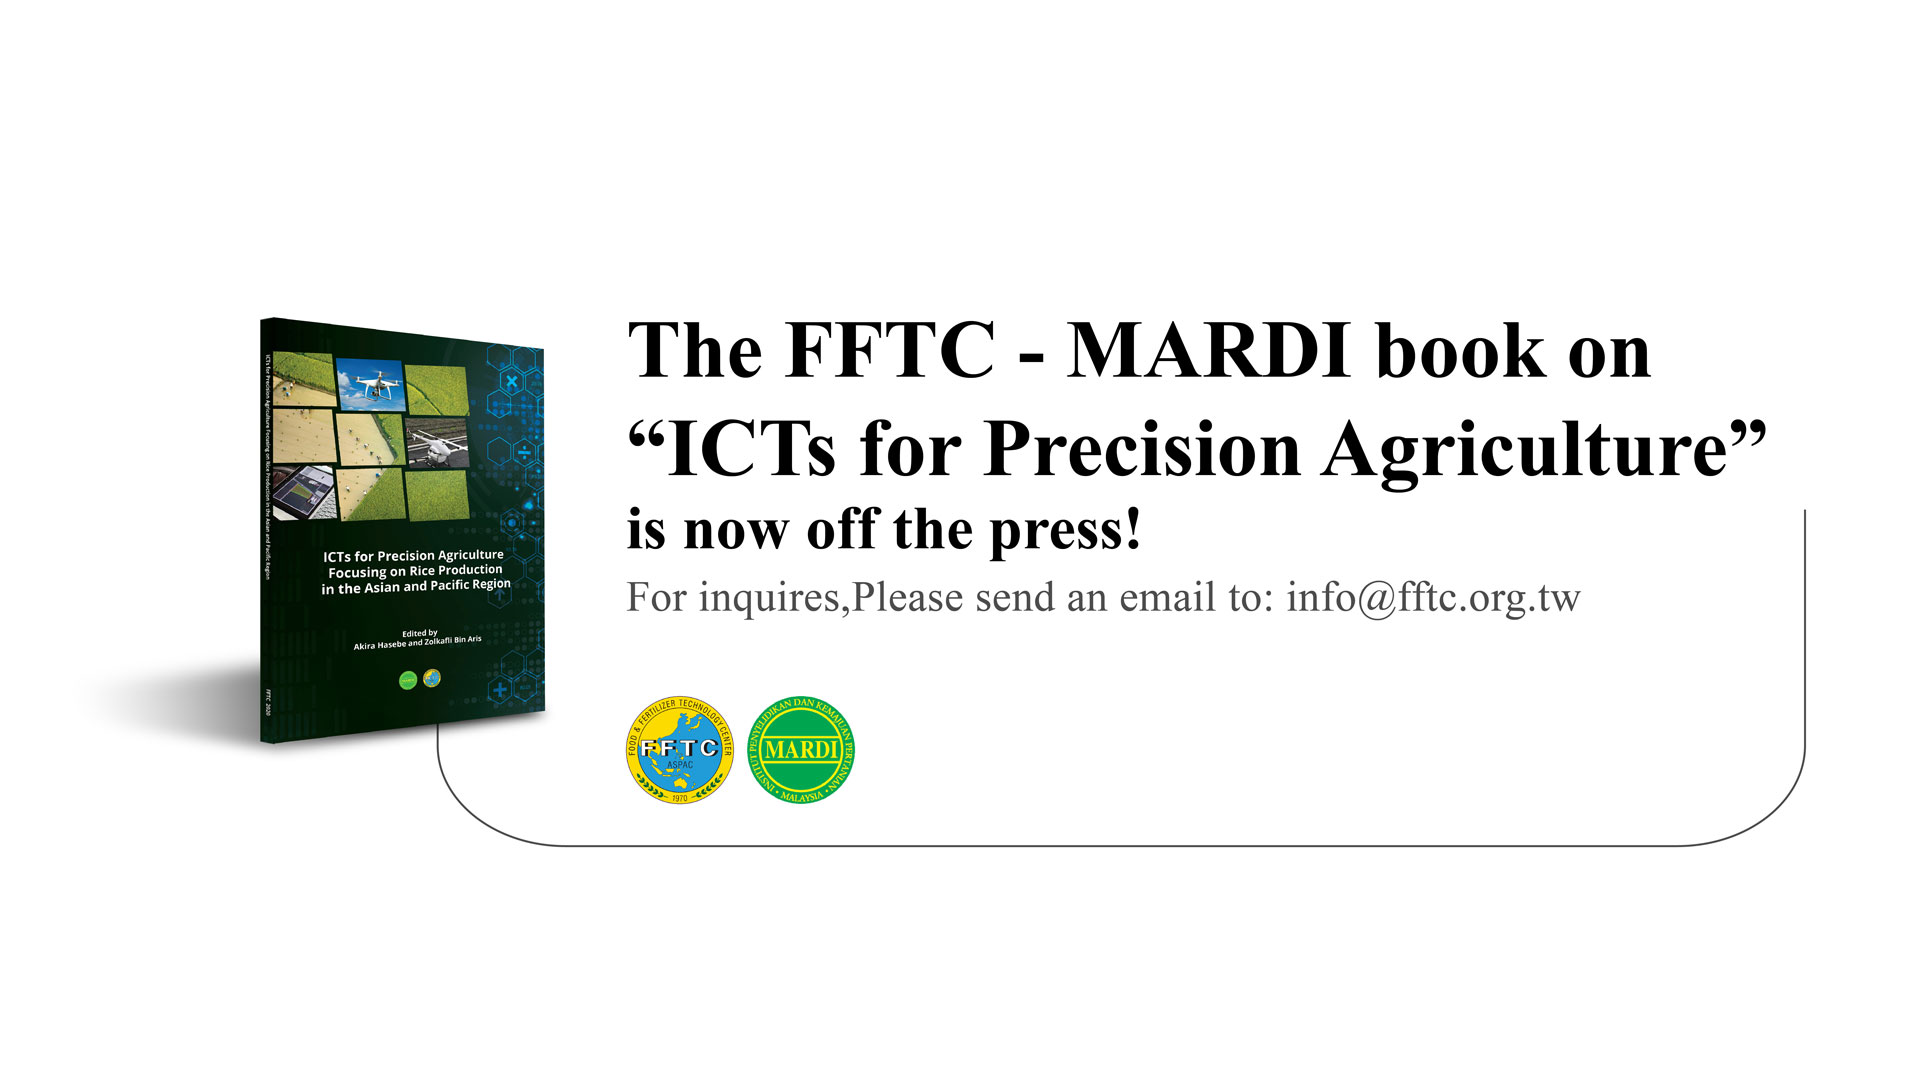 FFTC-MARDI book on ICTs for Precision Agriculture now off the press